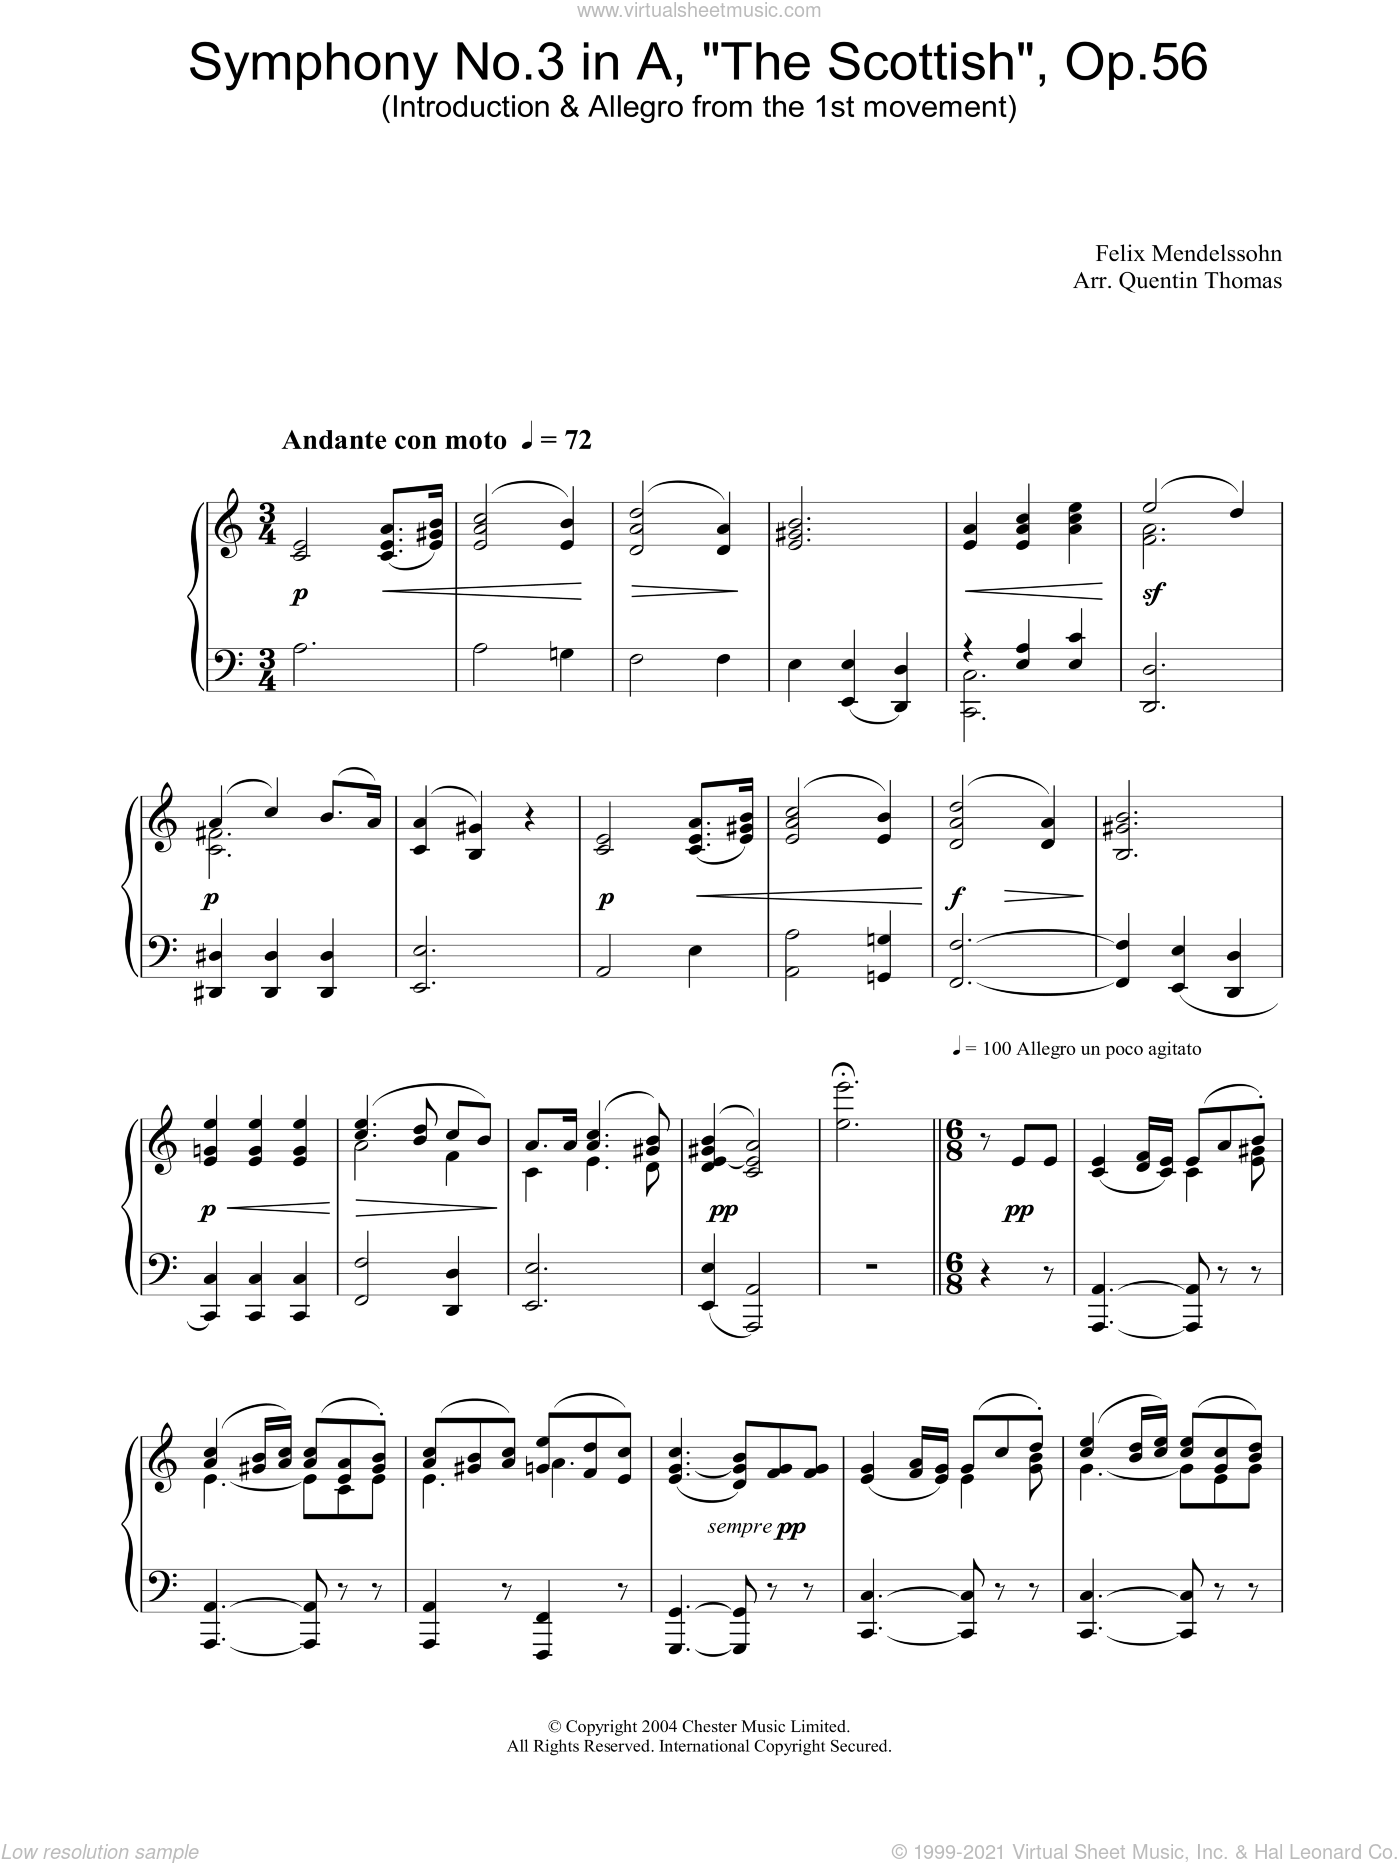 Symphony No.3 in A, 'The Scottish', Op.56 (Introduction and Allegro from the 1st movement) sheet music for piano solo by Felix Mendelssohn-Bartholdy. Score Image Preview.